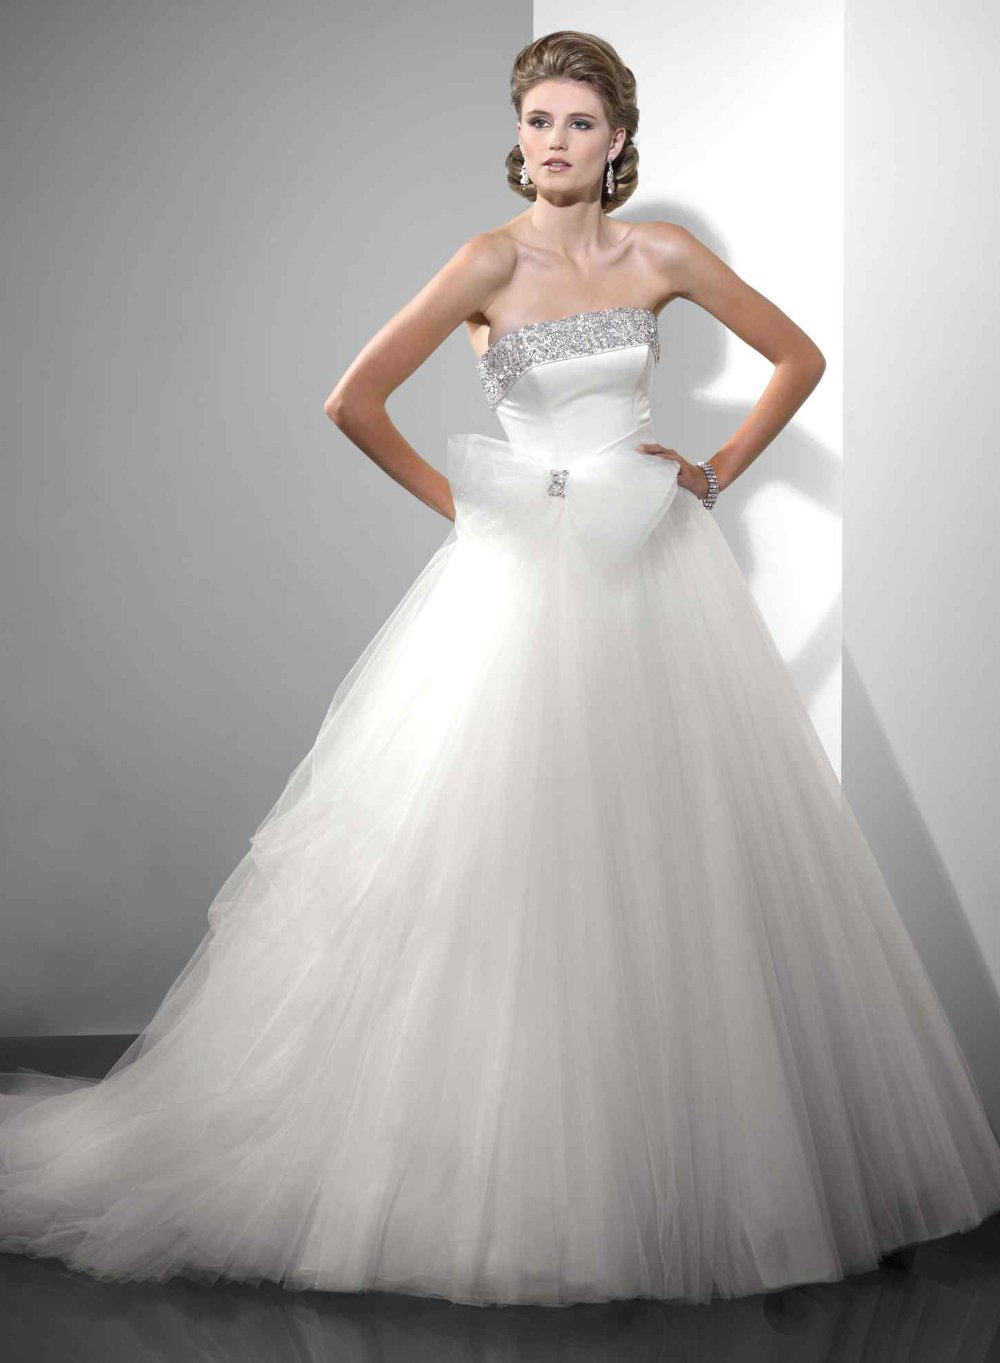 vestido de noiva robe de mariee Fashion Strapless Bow Lace Up Tulle Ruffle Ball 2018 cheap Wedding dresses bridal Gowns in Wedding Dresses from Weddings Events